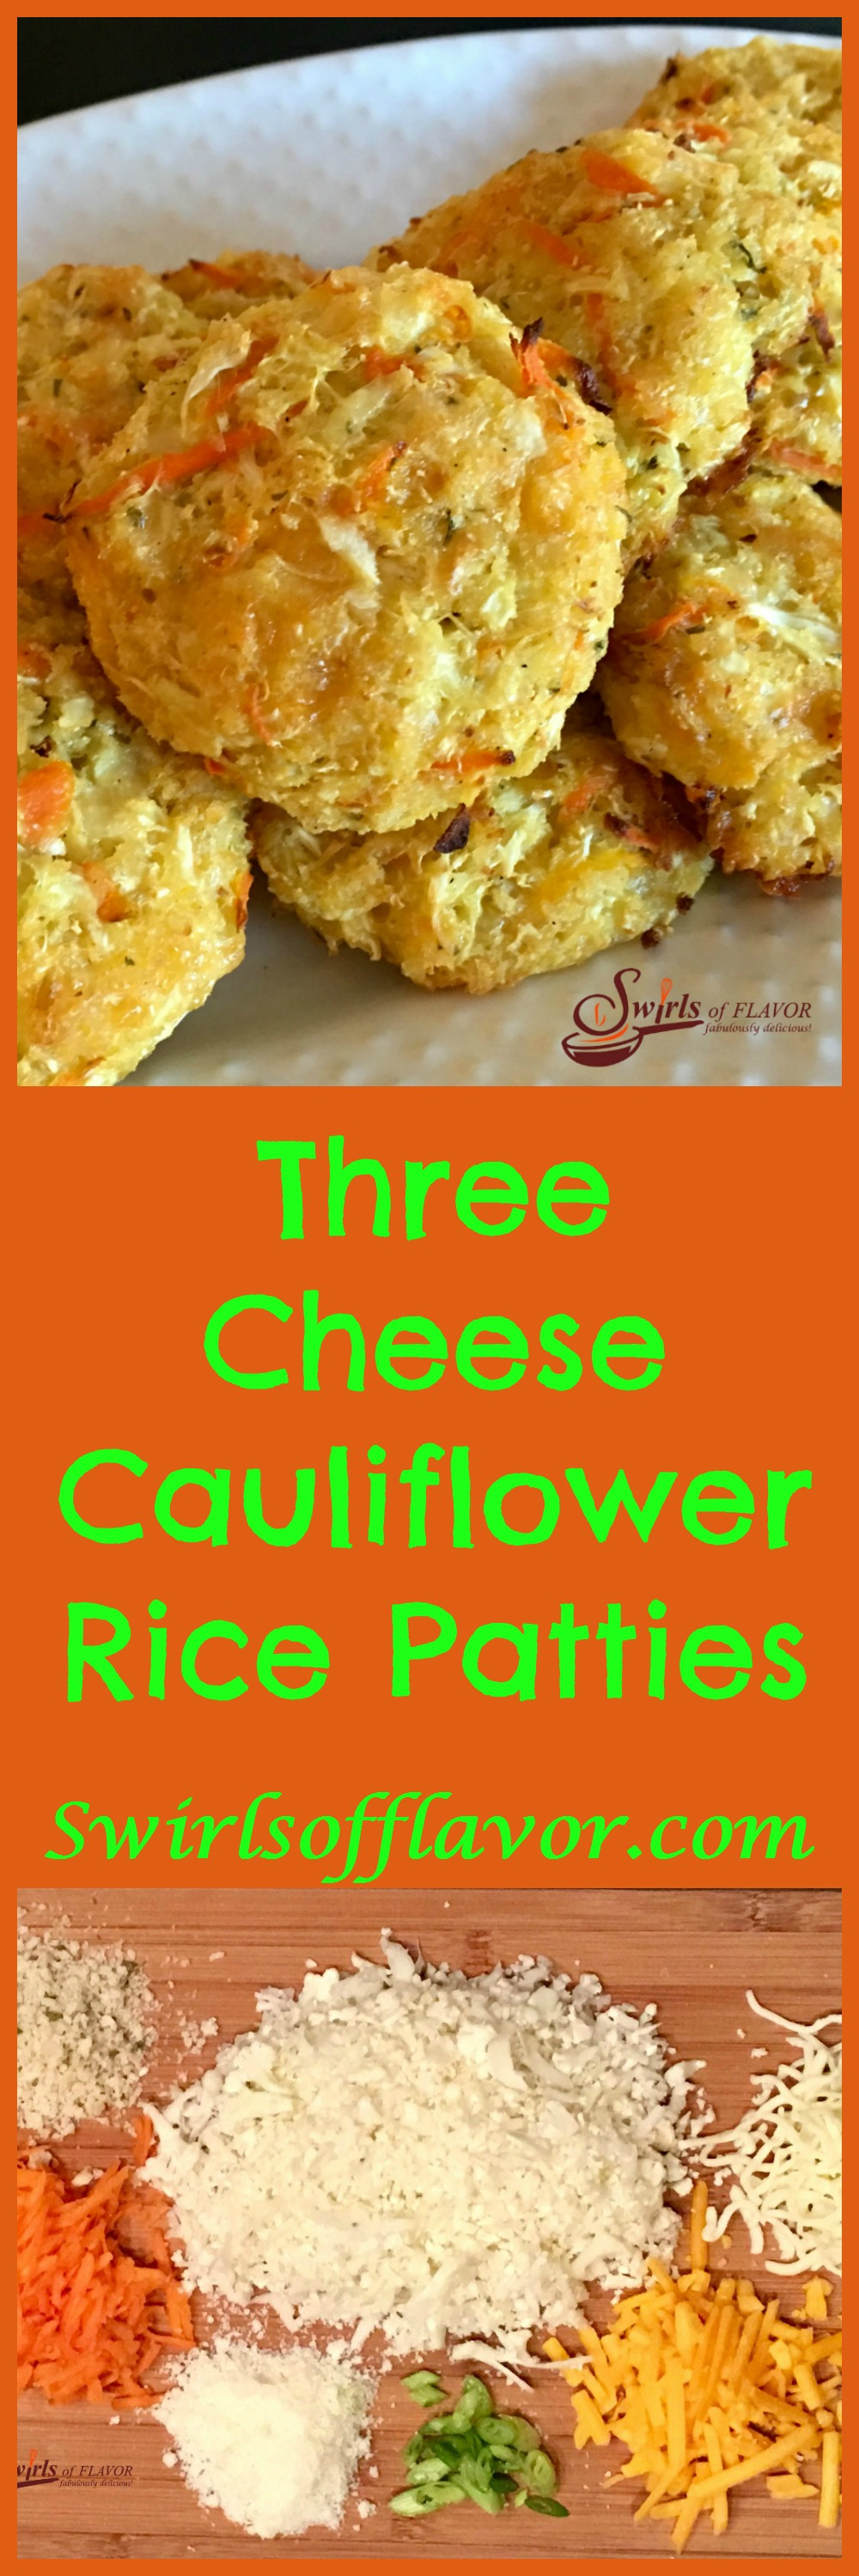 Mozzarella, cheddar and Parmesan cheeses combine with cauliflower rice for a mega punch of flavor in Three Cheese Cauliflower Rice Patties! cauliflower | cheese | cauliflower rice | over roasted | cheese | three cheese | cheddar | mozzarella | Parmesan | vegetable | nutrition | kid friendly | #swirlsofflavor